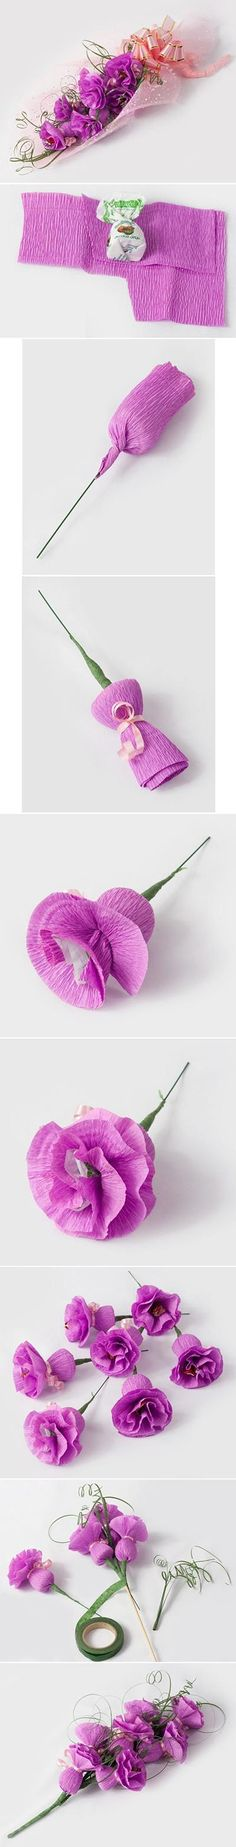 Diy Beautiful Pink Flower | DIY & Crafts Tutorials